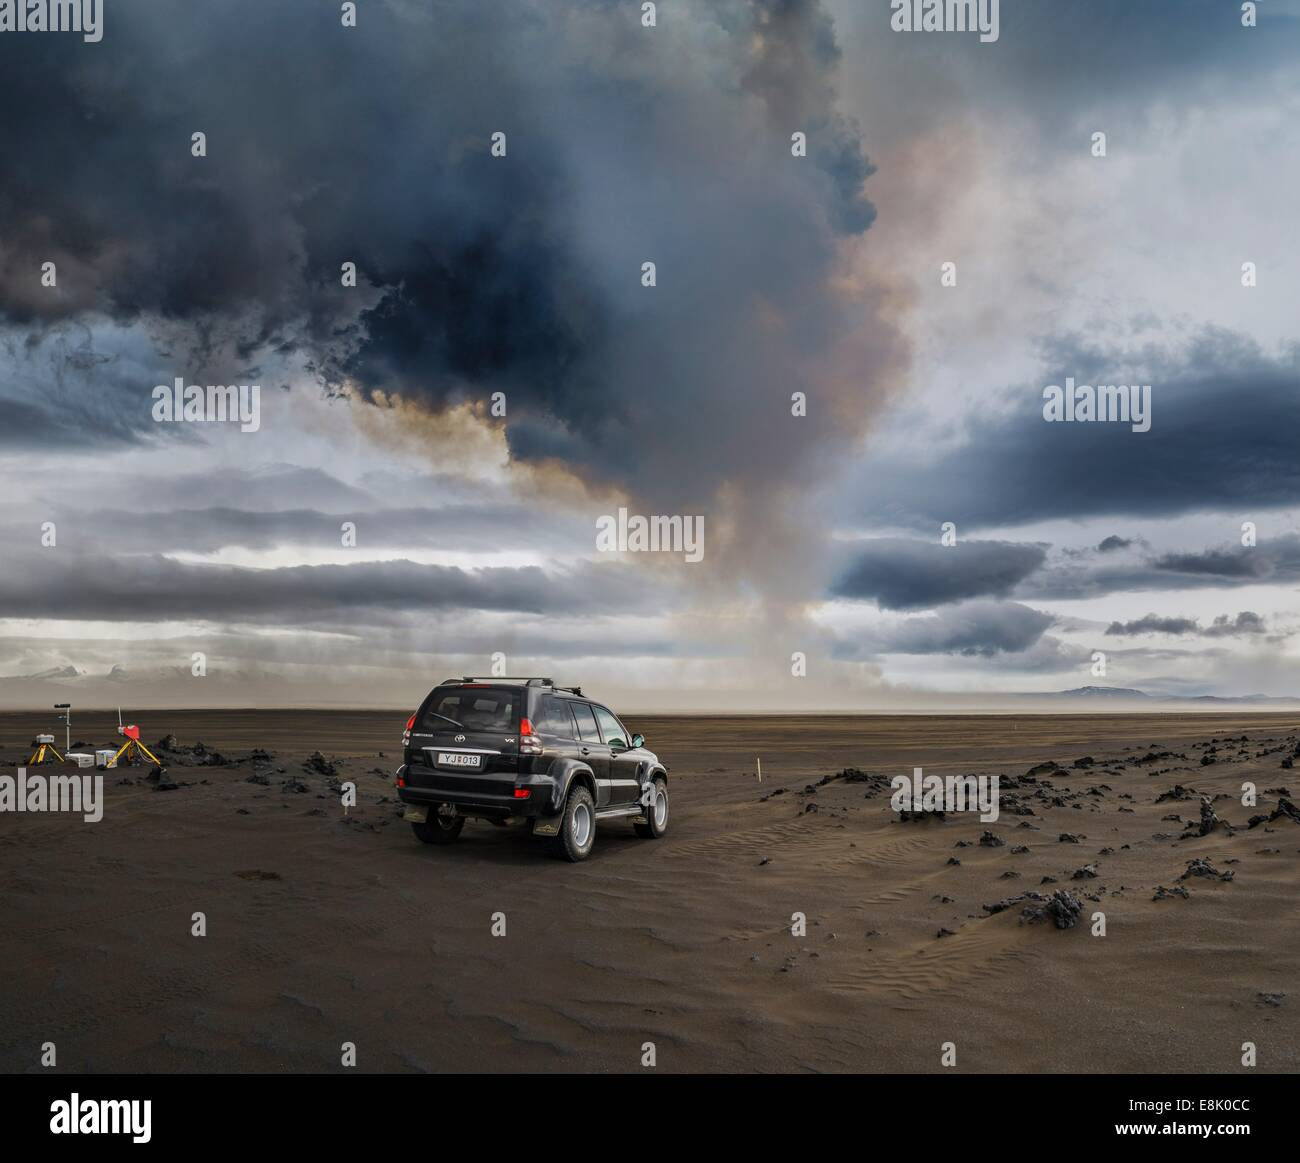 Volcanic Plumes with toxic gases, Holuhraun Fissure Eruption, Iceland. Stock Photo